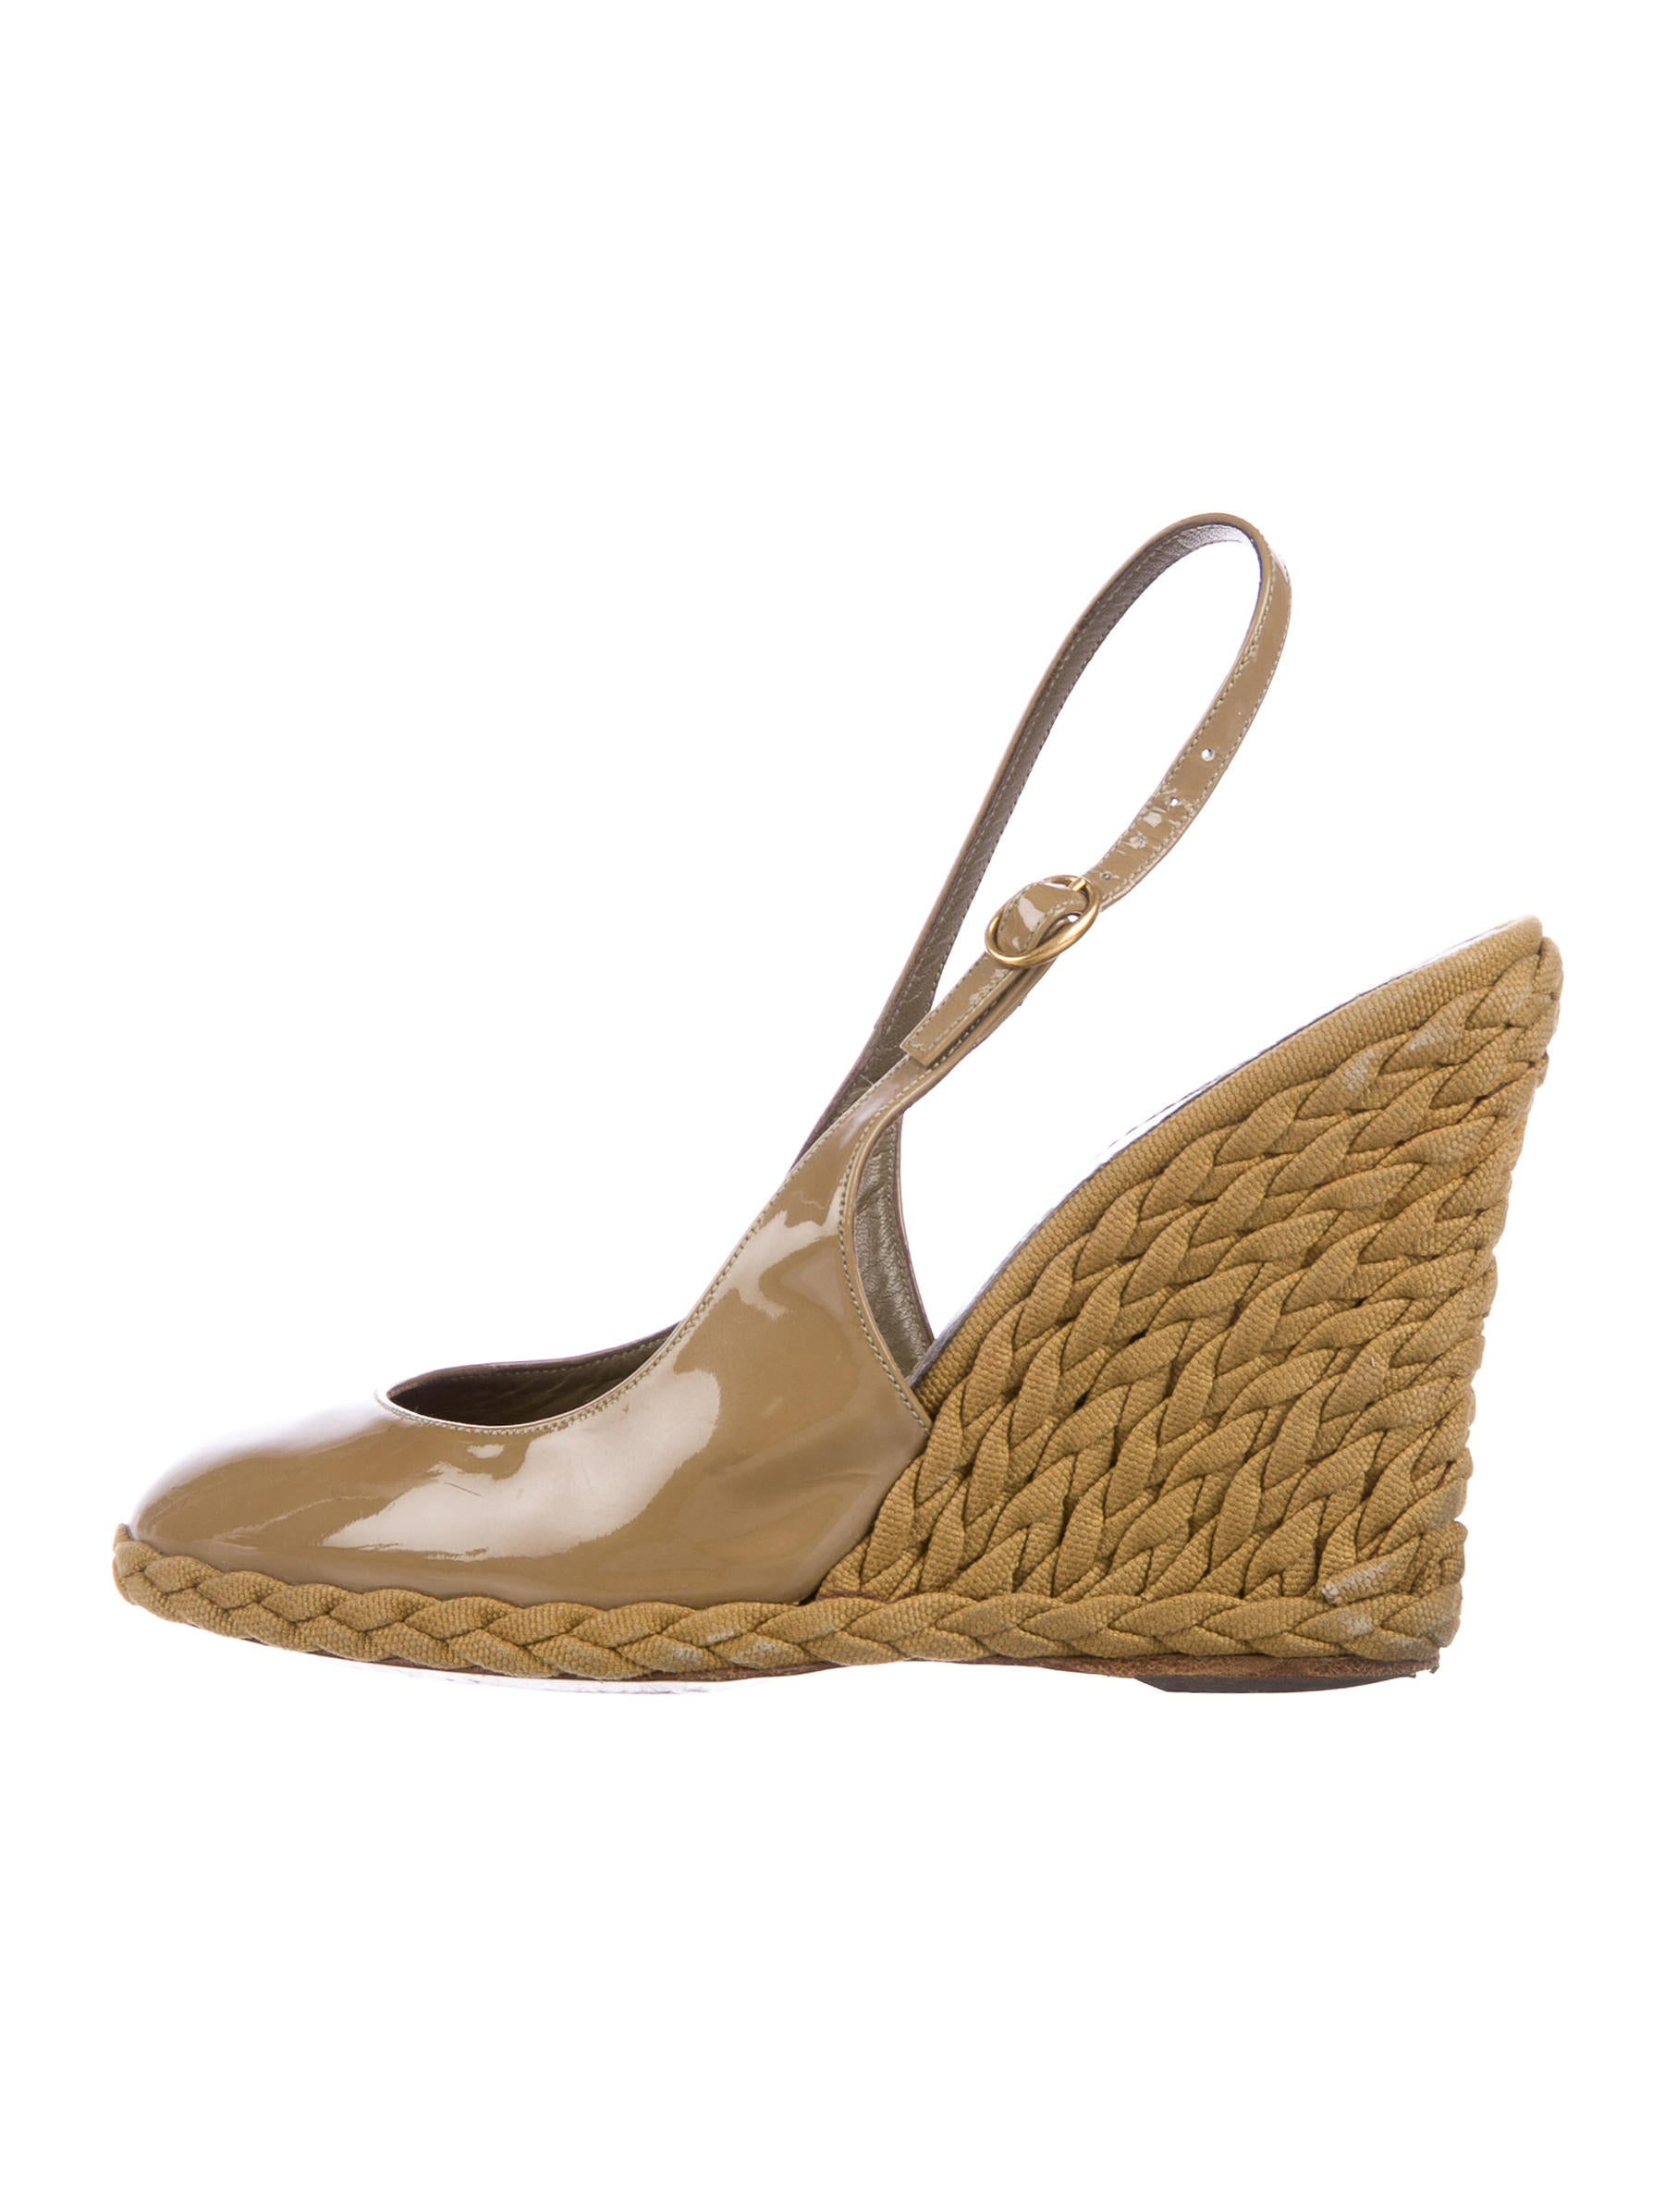 Yves Saint Laurent Slingback Wedge Pumps cheap pay with paypal kSRax0O6